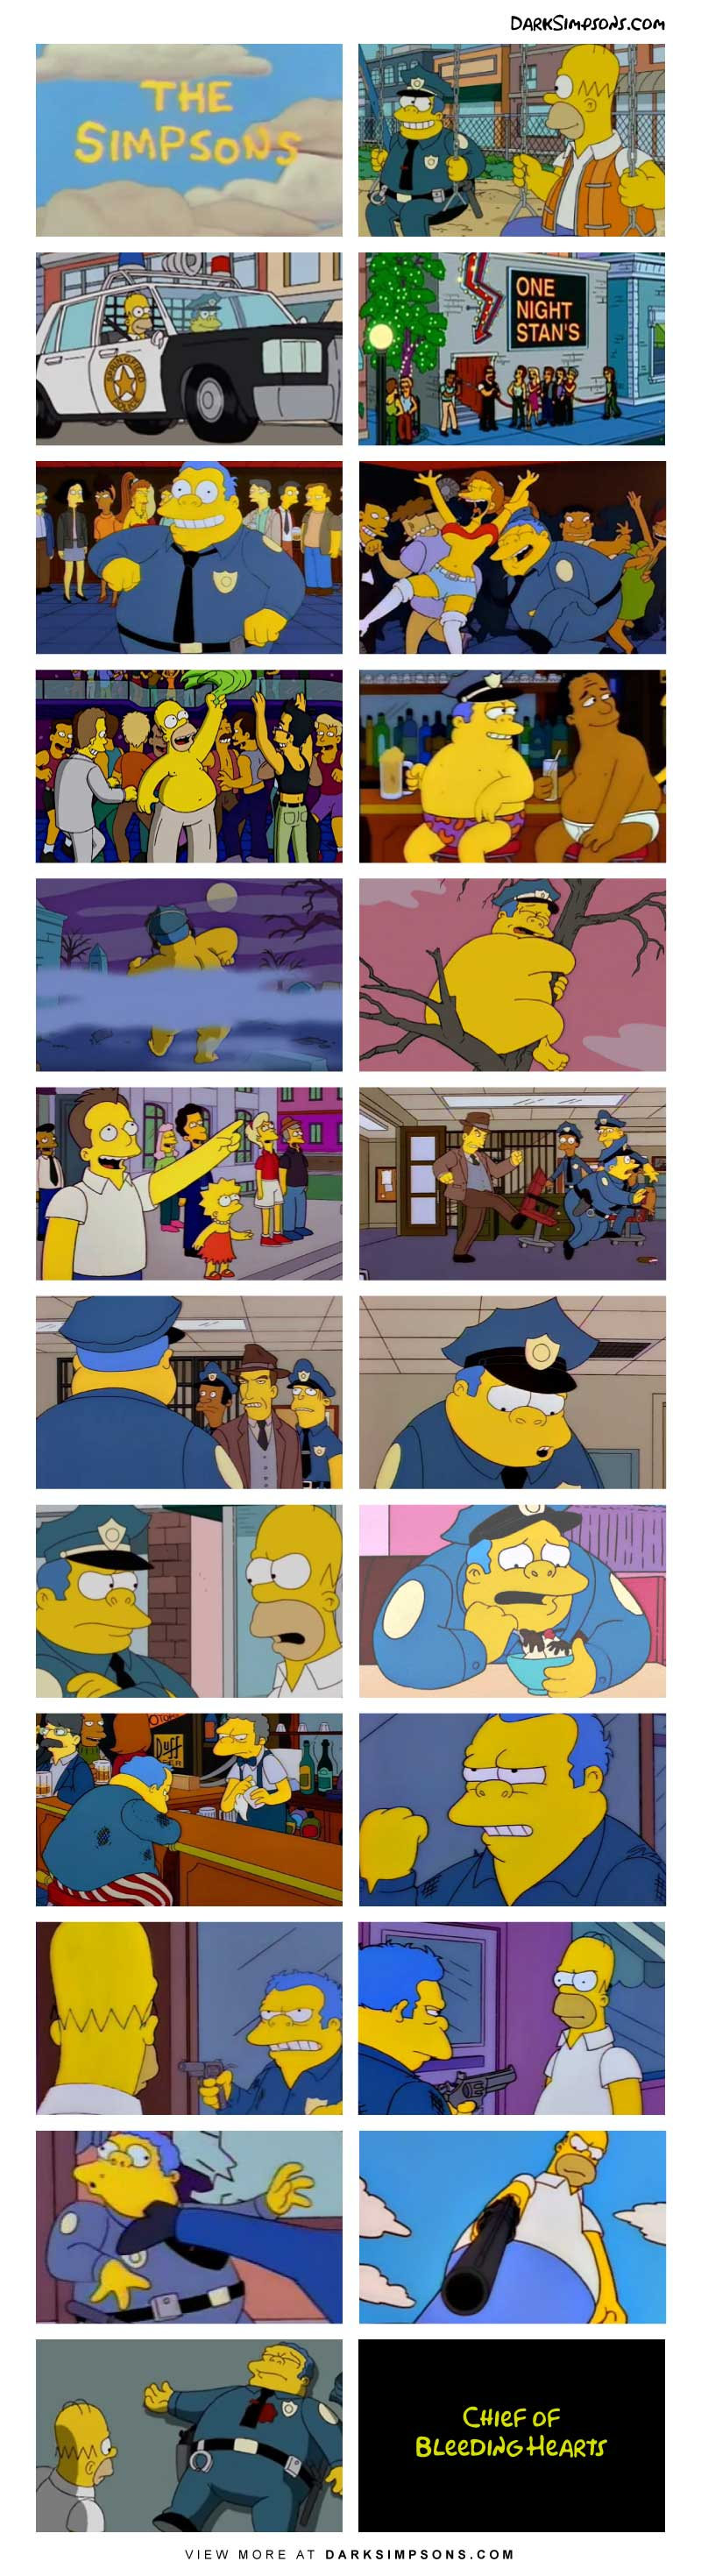 Homer and Chief Wiggum are best friends! But after one unfortunate night, Chief Wiggum's life is hurled into a tailspin.